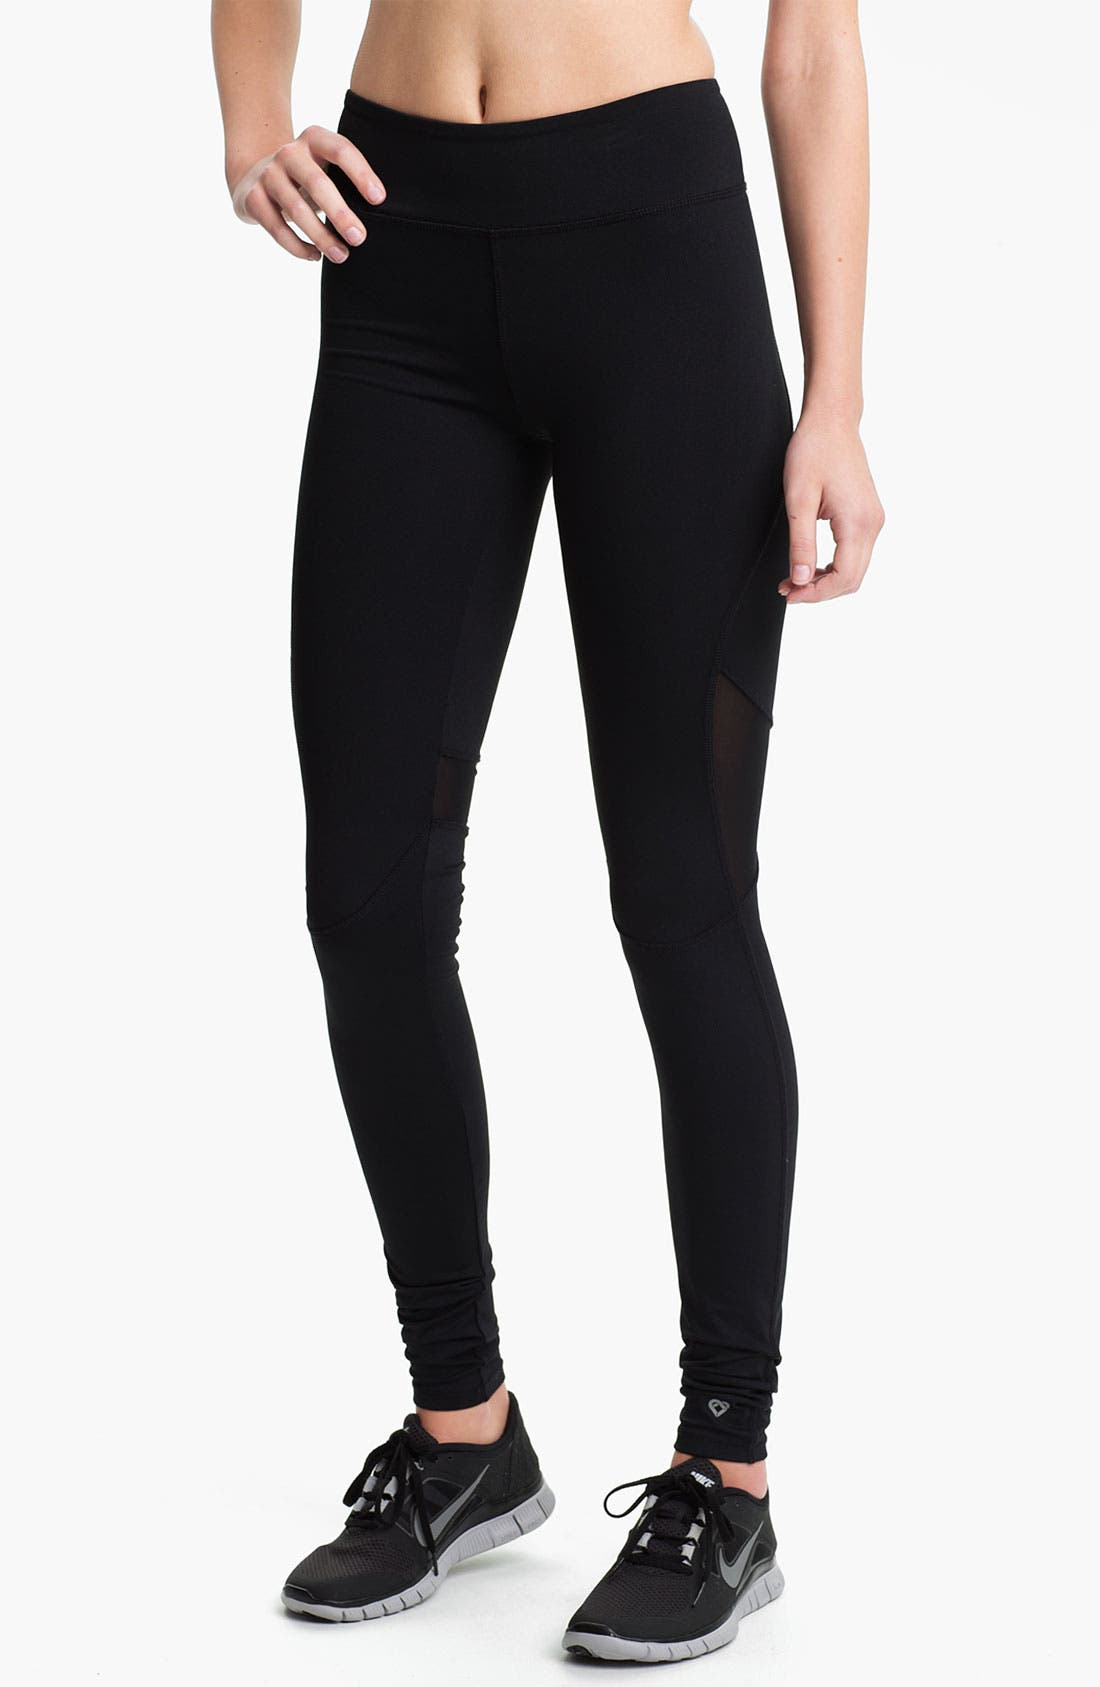 Alternate Image 1 Selected - Colosseum 'Body Hug' Leggings